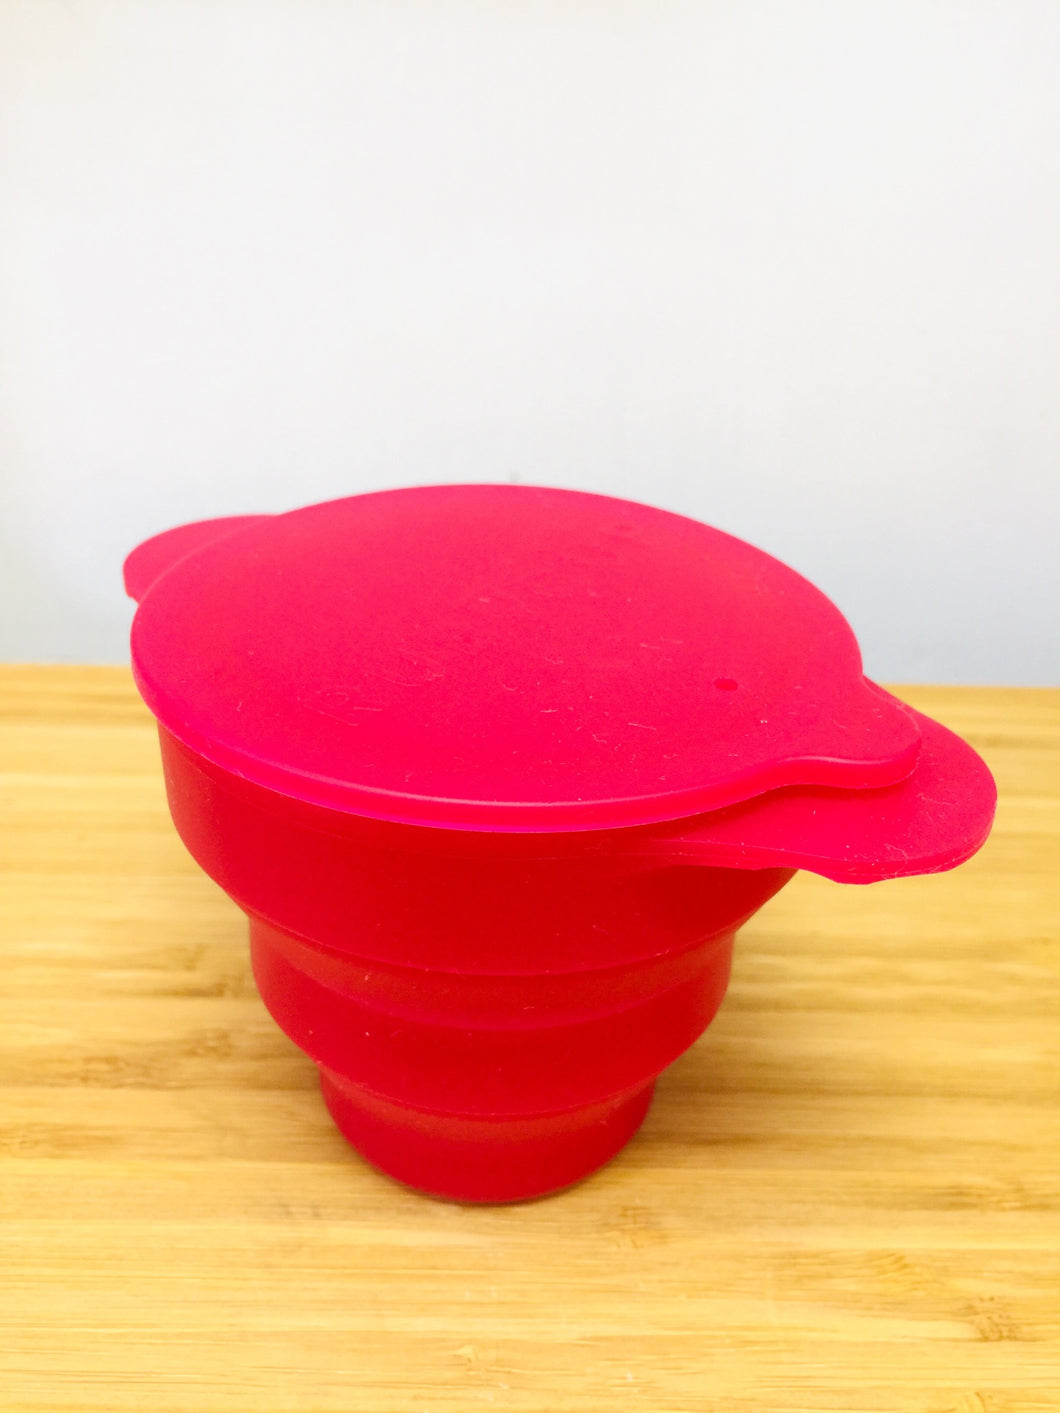 Menstrual Silicon Cup (Foldable Rubycup for Cleaning)